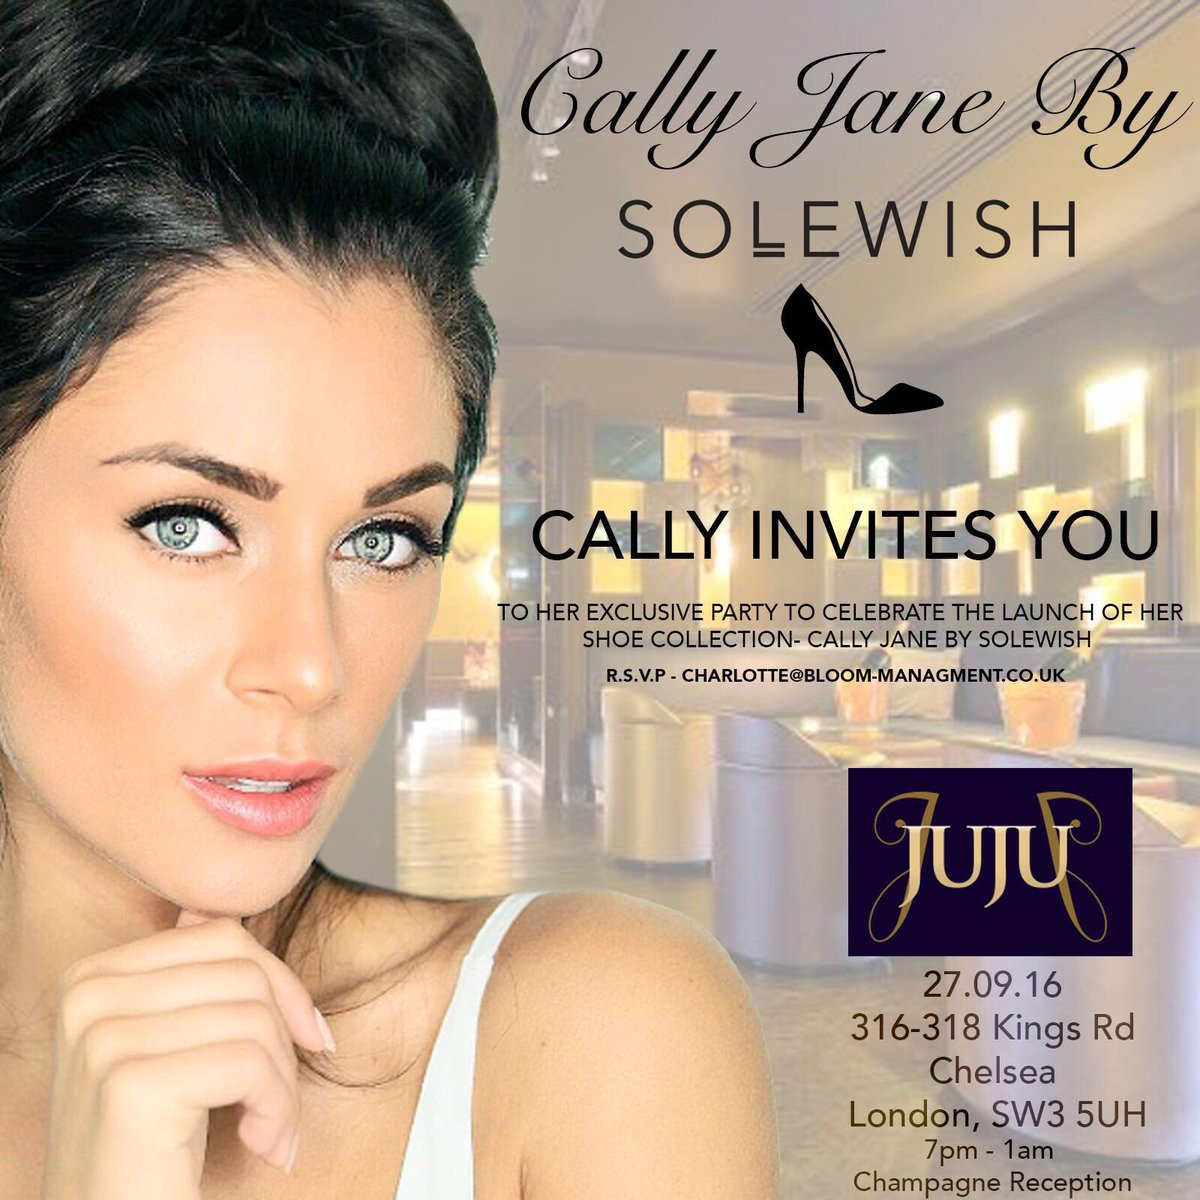 Looking forward too having @DJColinFrancis down @JuJuKingsRoad for @MissCallyJane @collection_cj launch tonight #SoleWish #JuJuChelsea